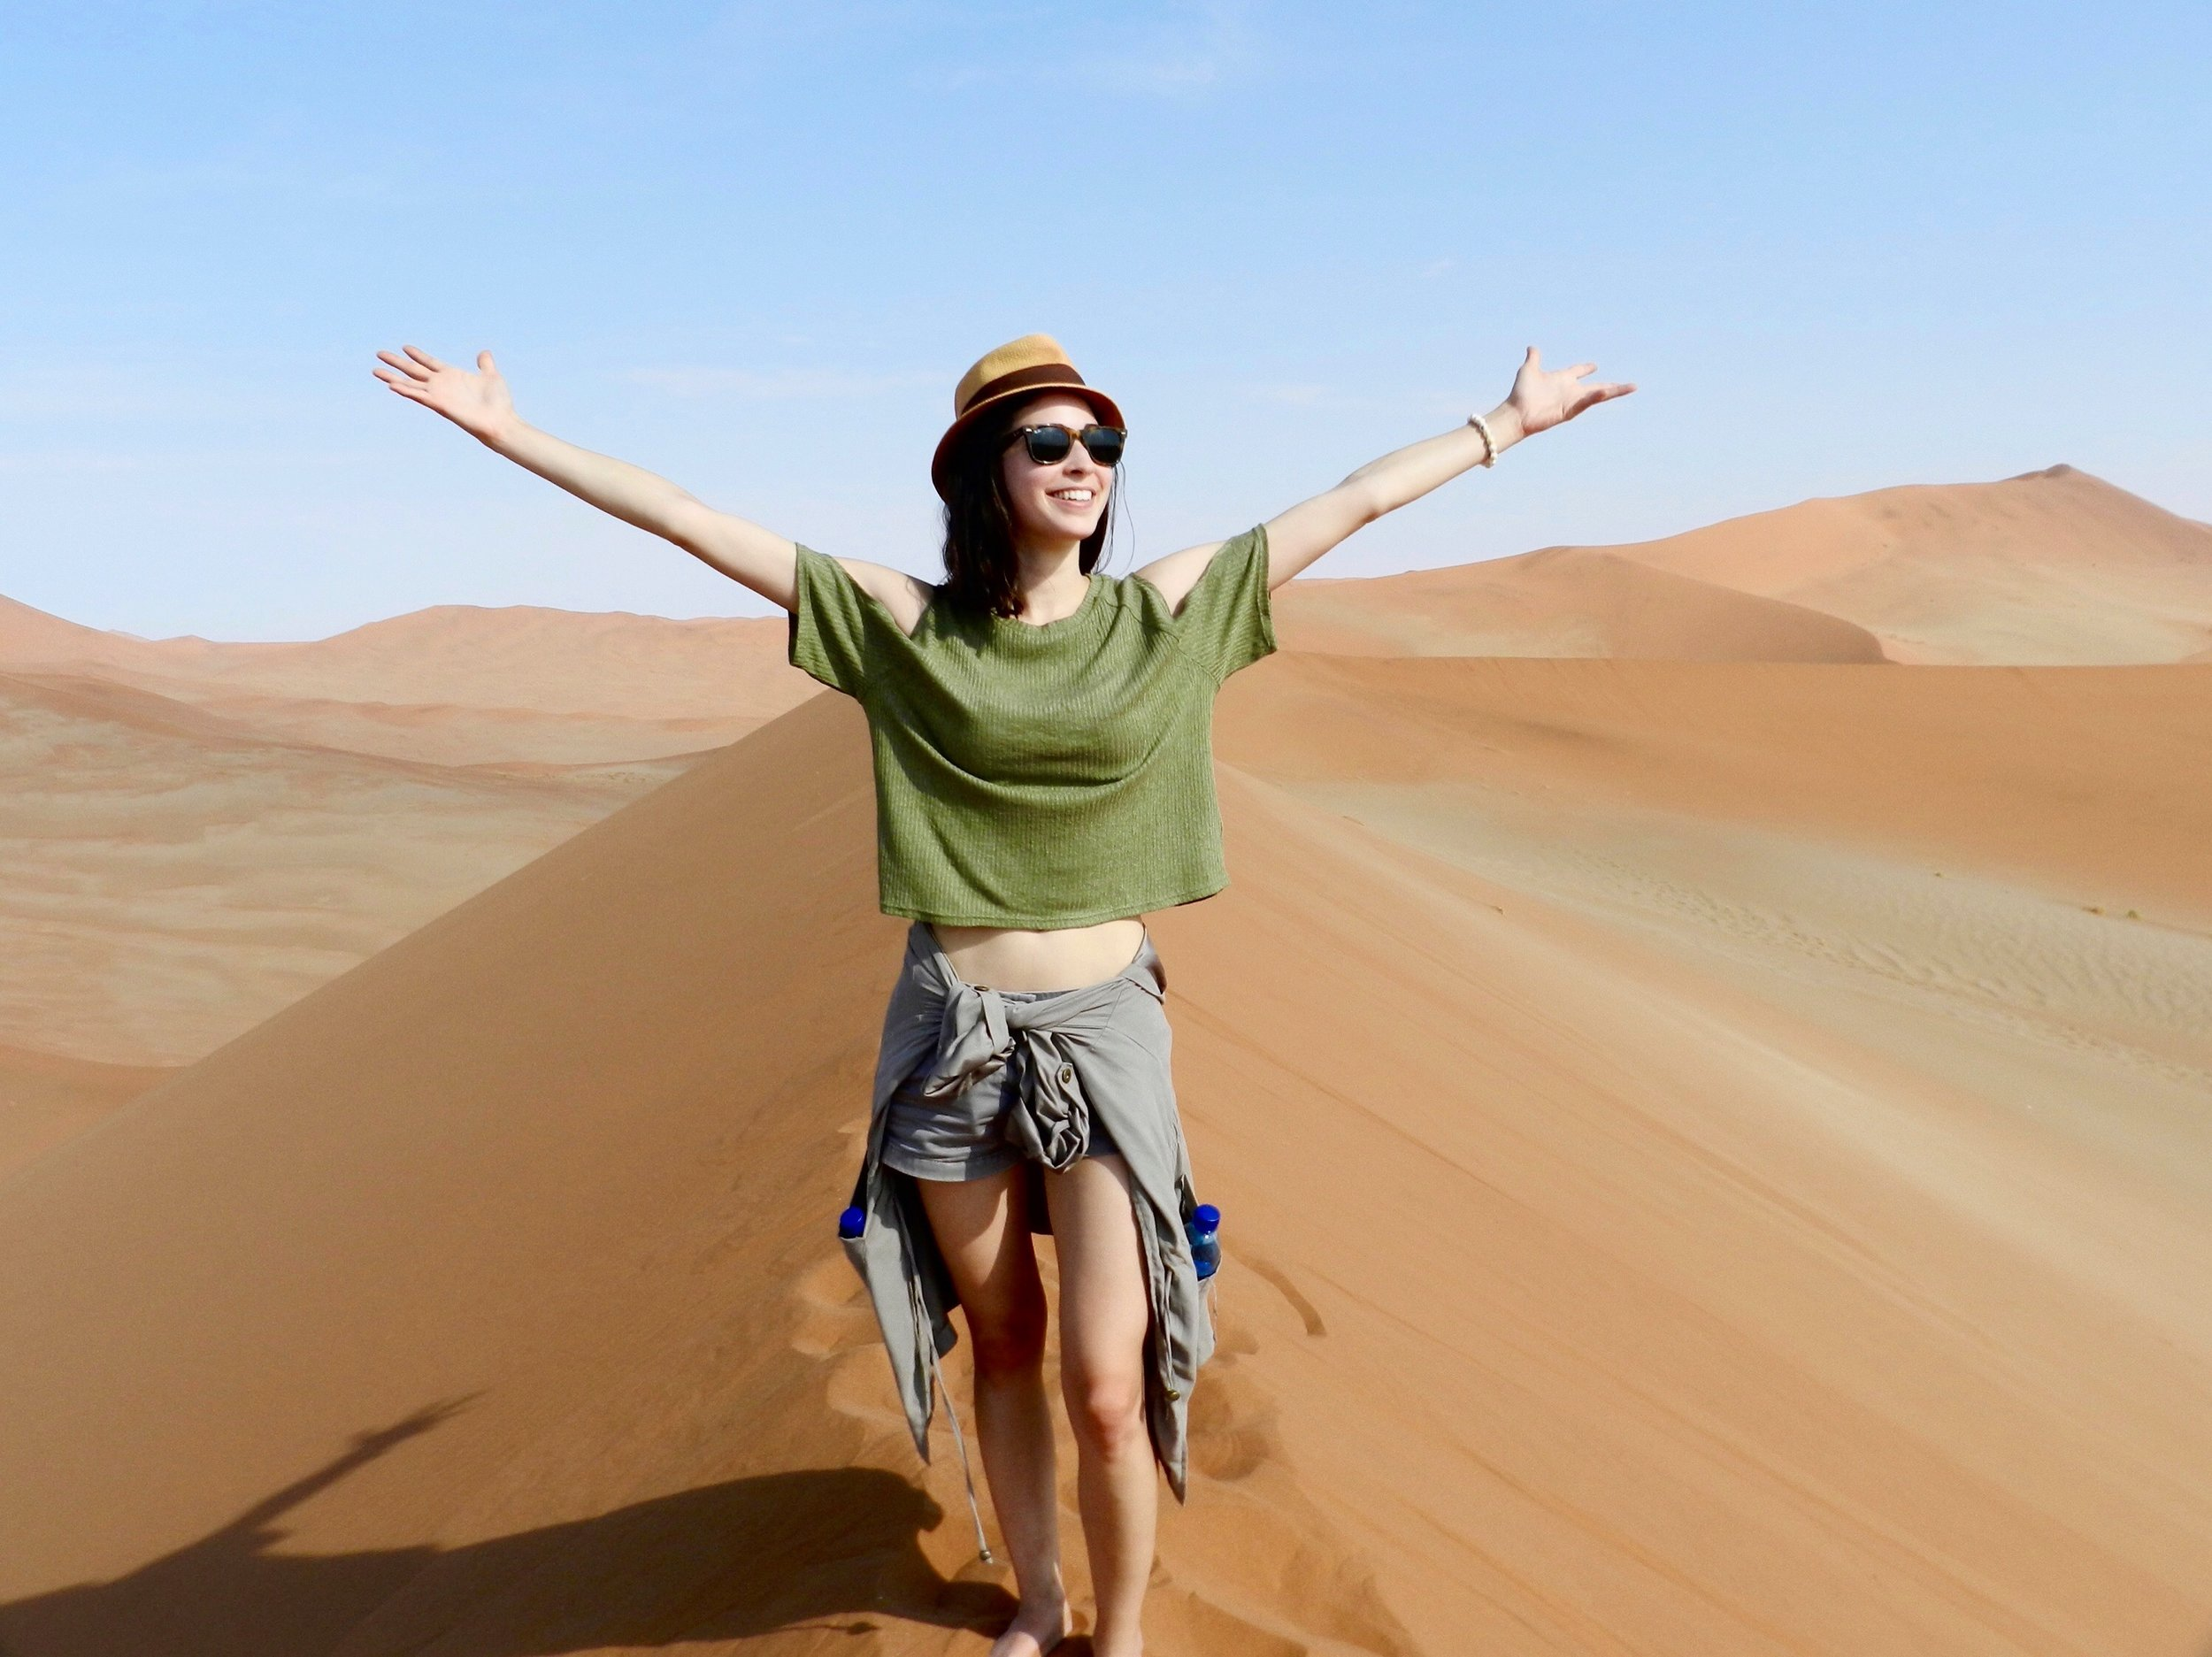 Elle Powell in Namibia